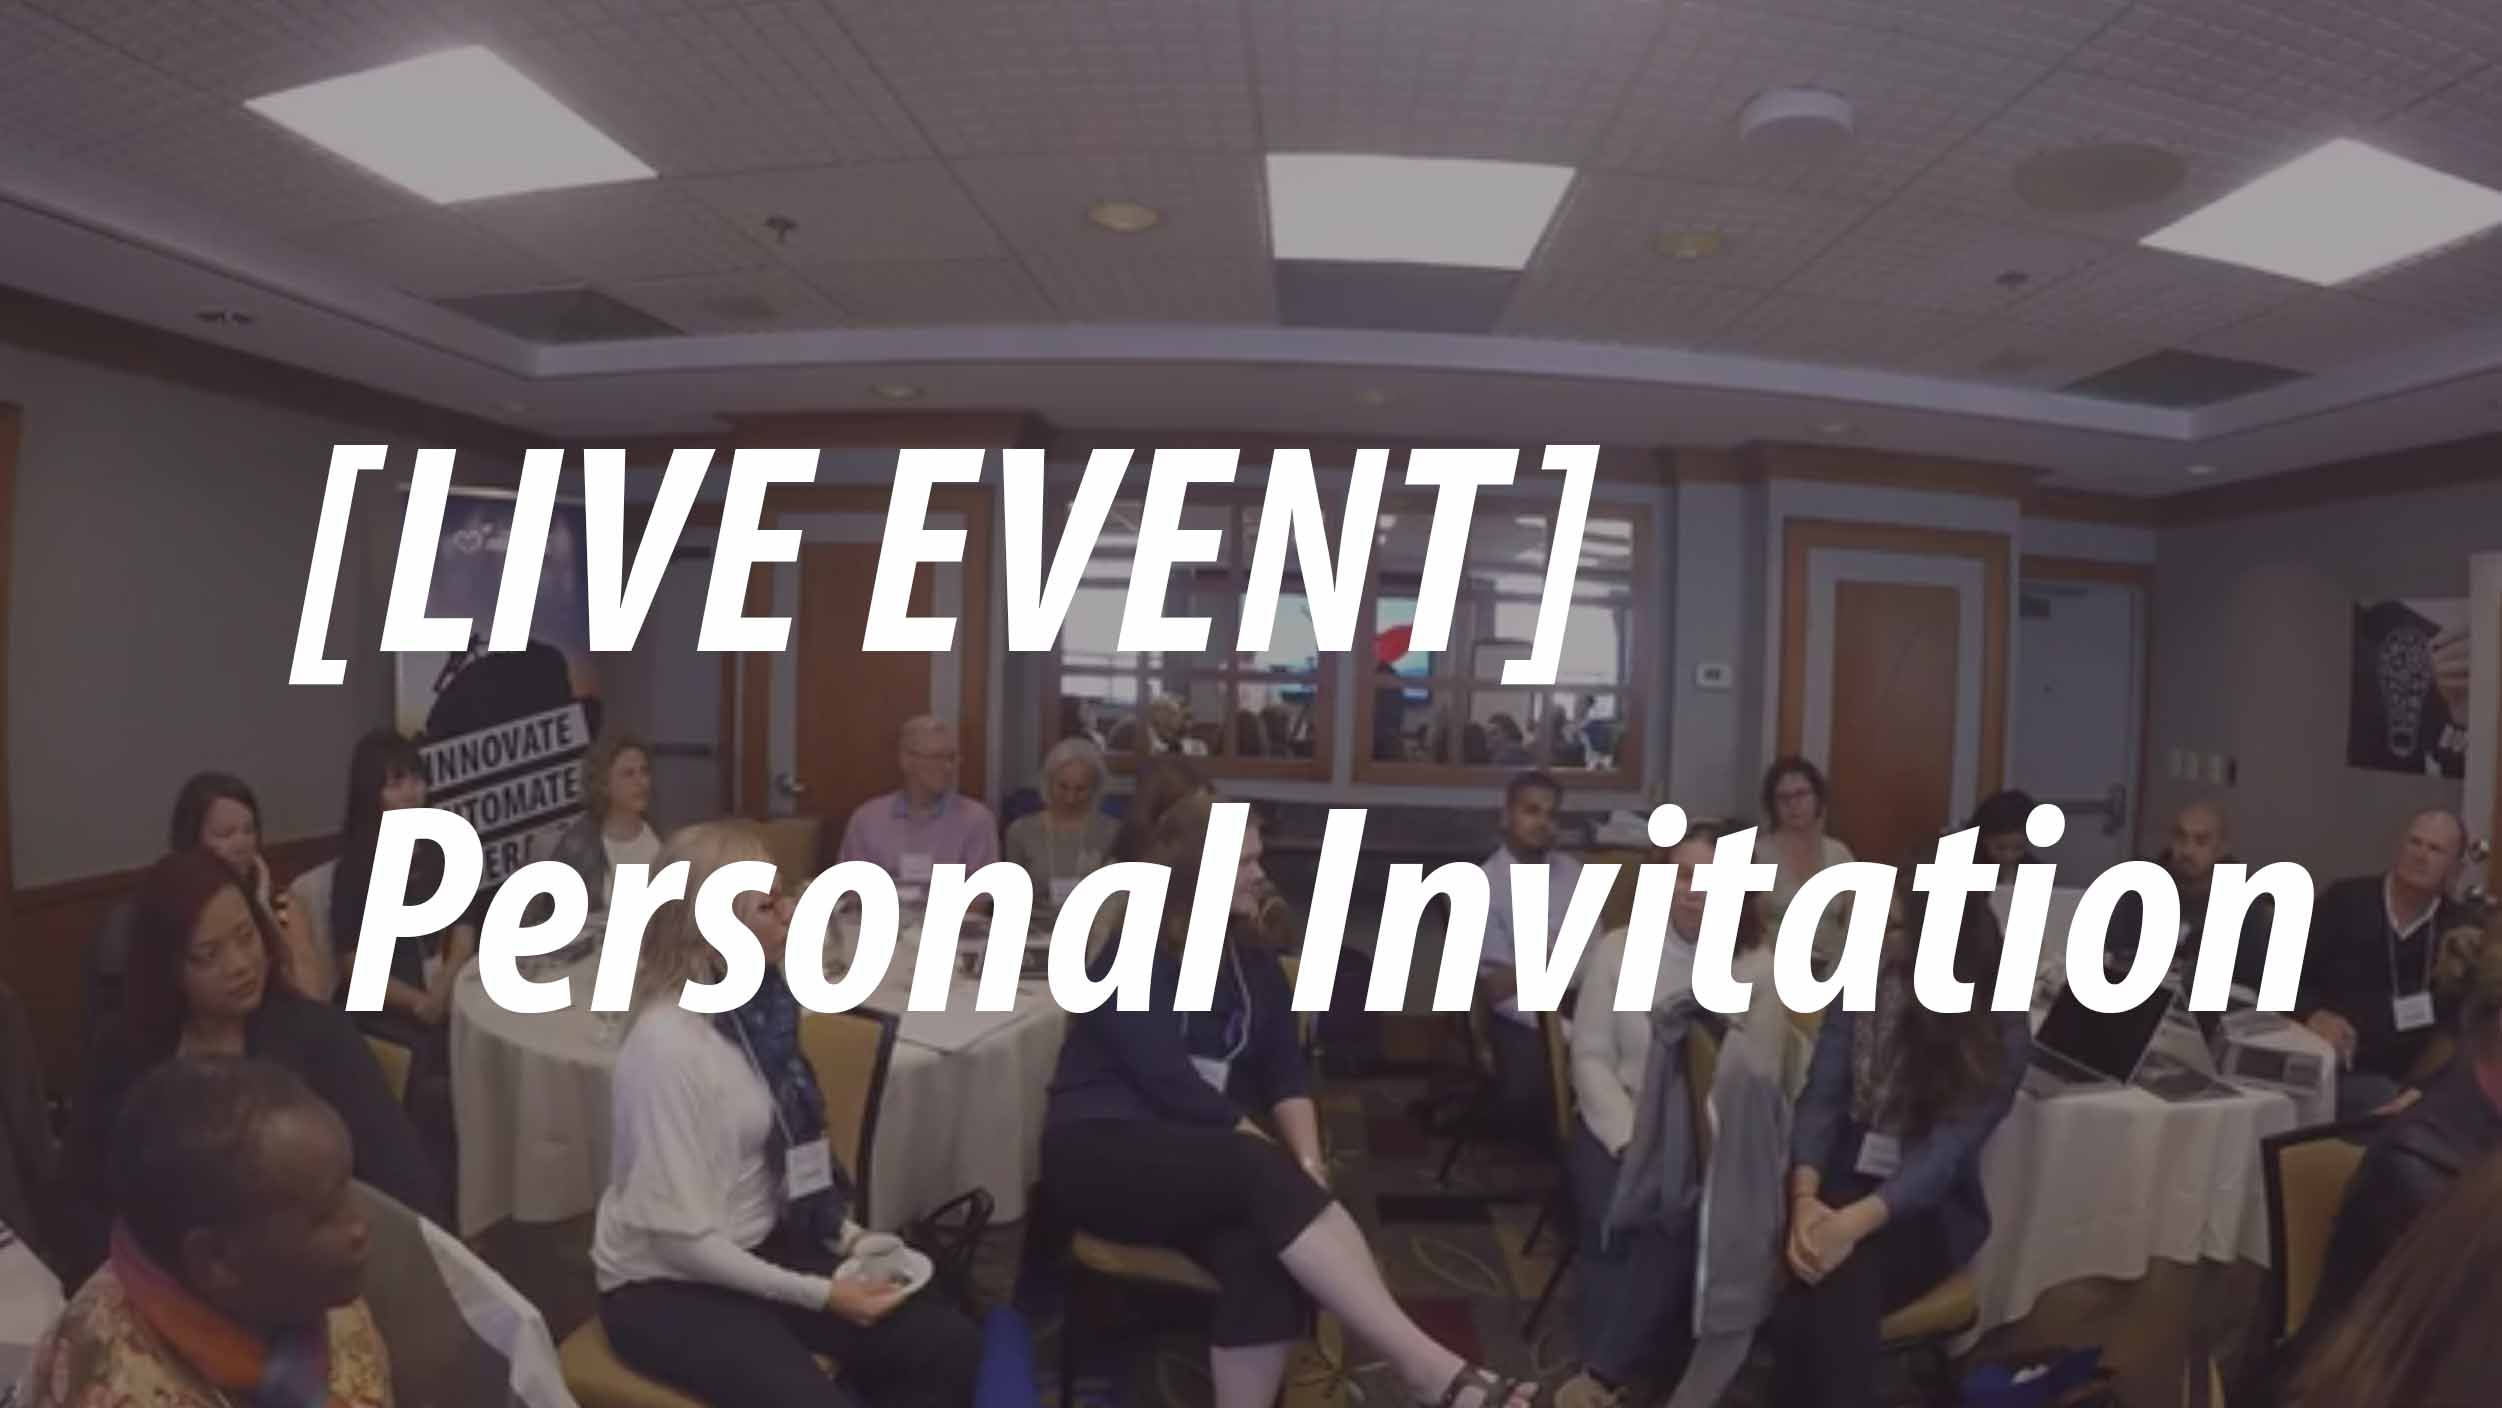 [LIVE EVENT] Personal Invitation